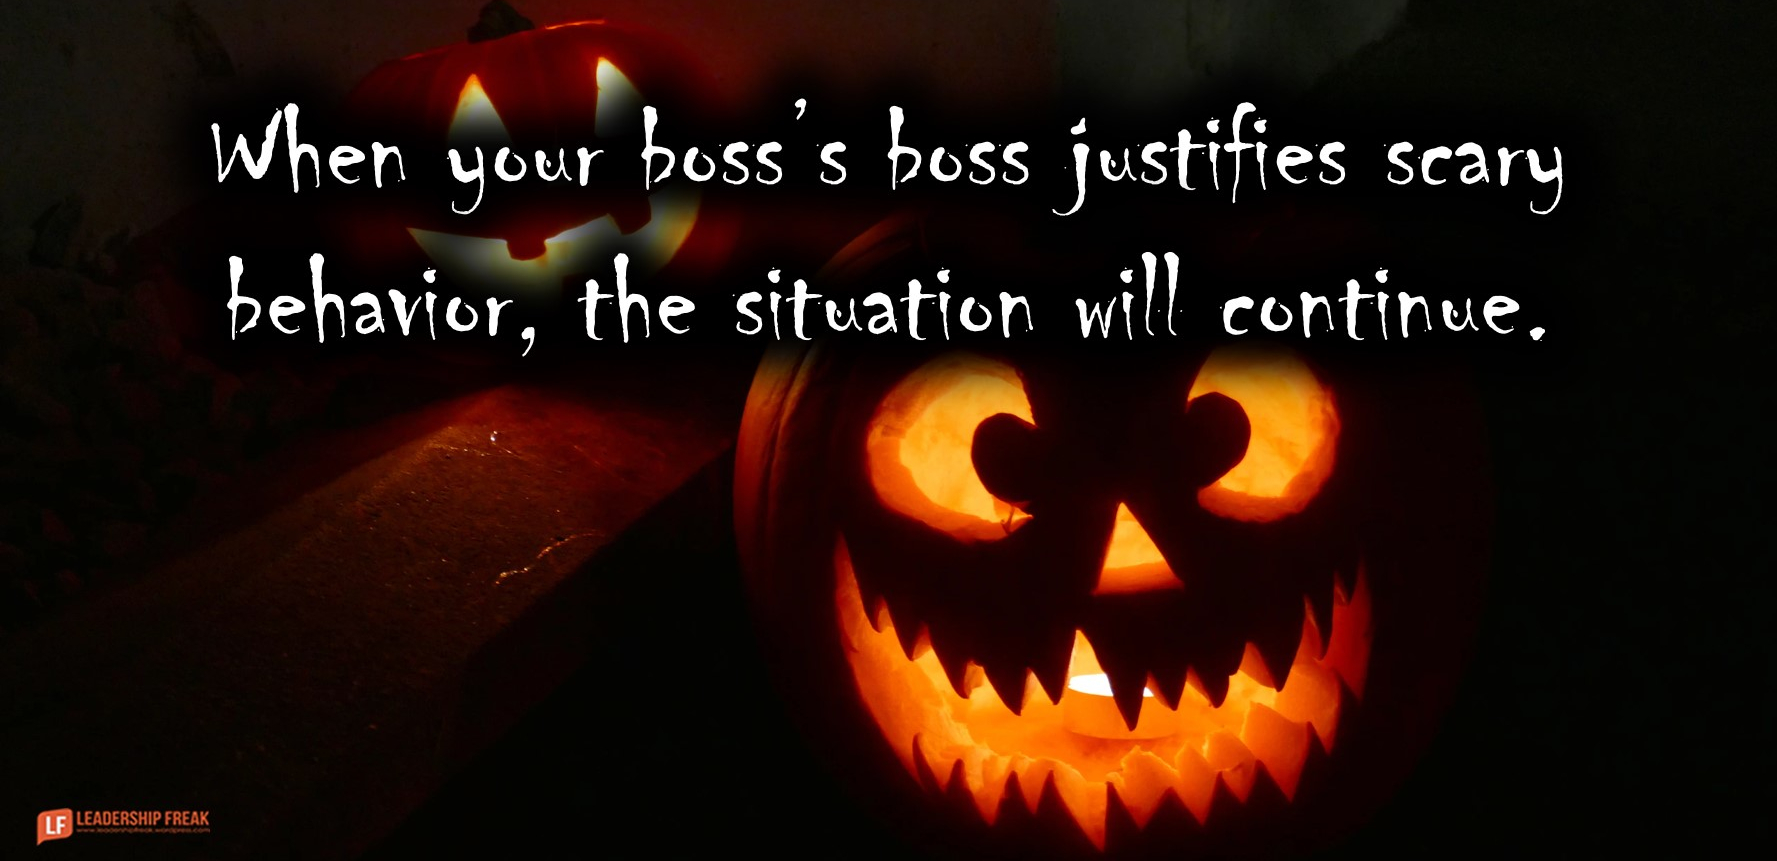 The 12 Scariest Bosses Anyone Could Have